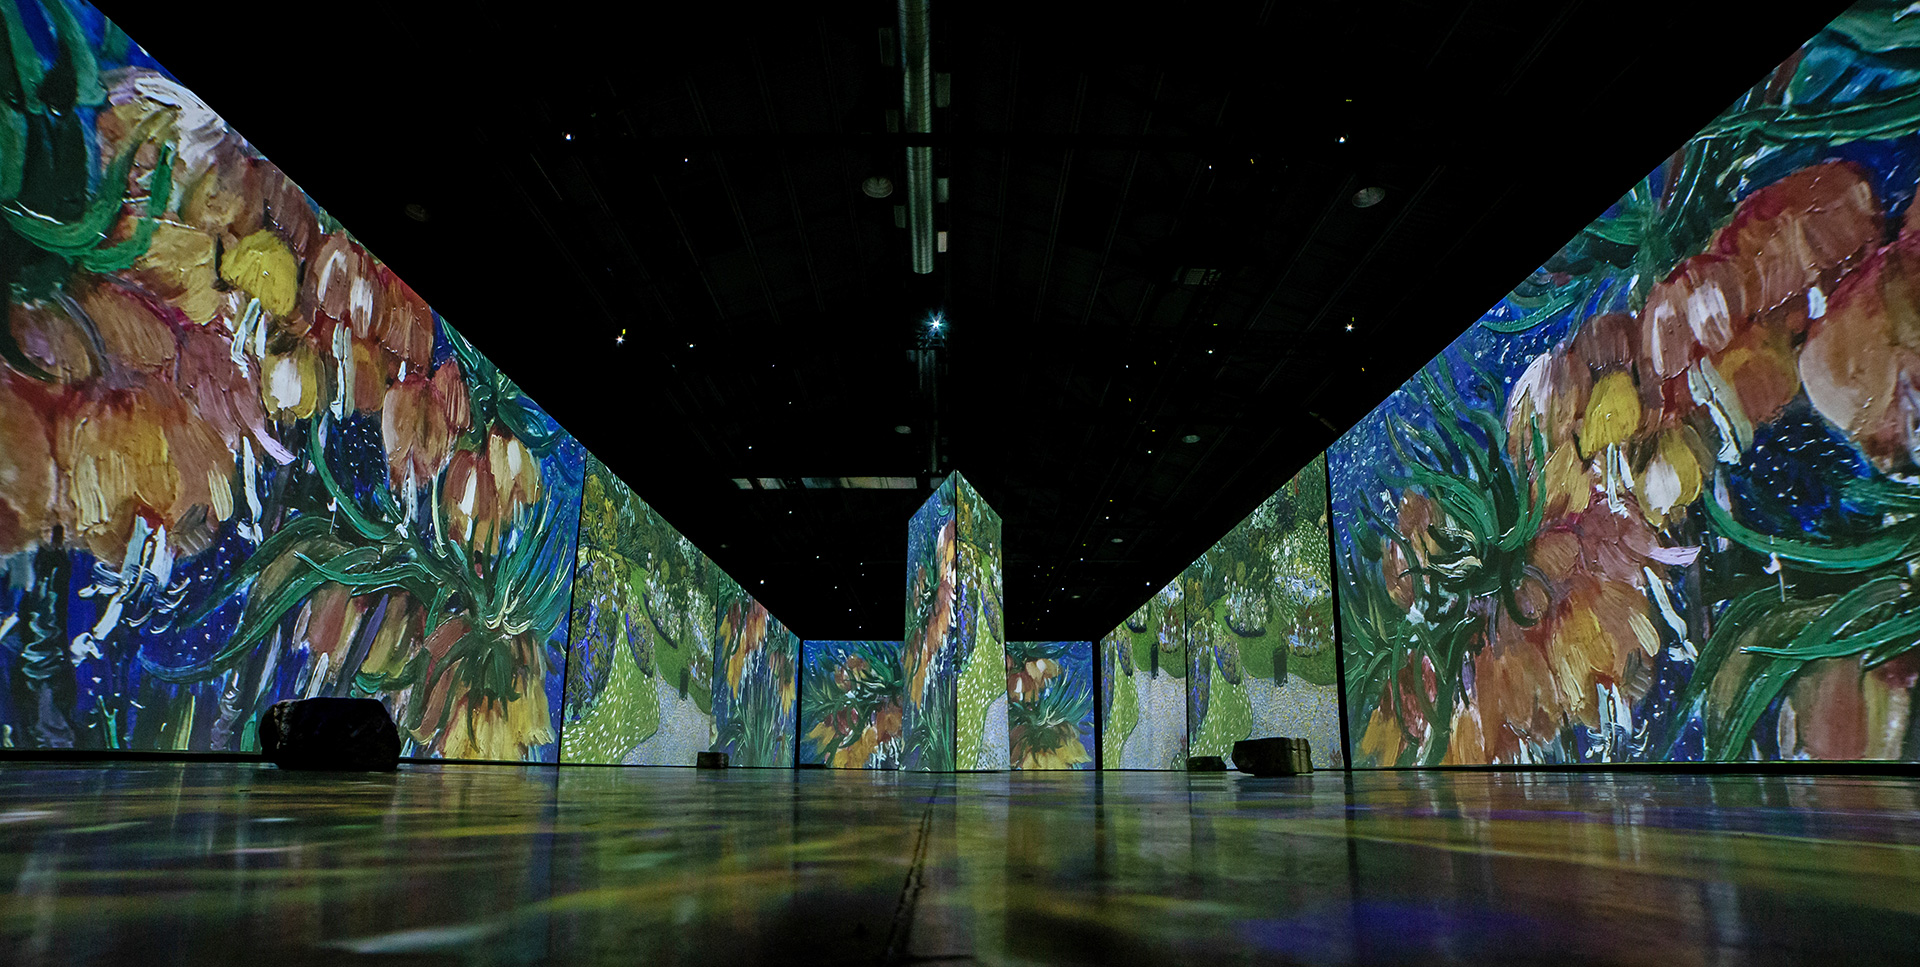 The coming together of visuals and music accentuate the immersive experience | Imagine Van Gogh | STIRworld